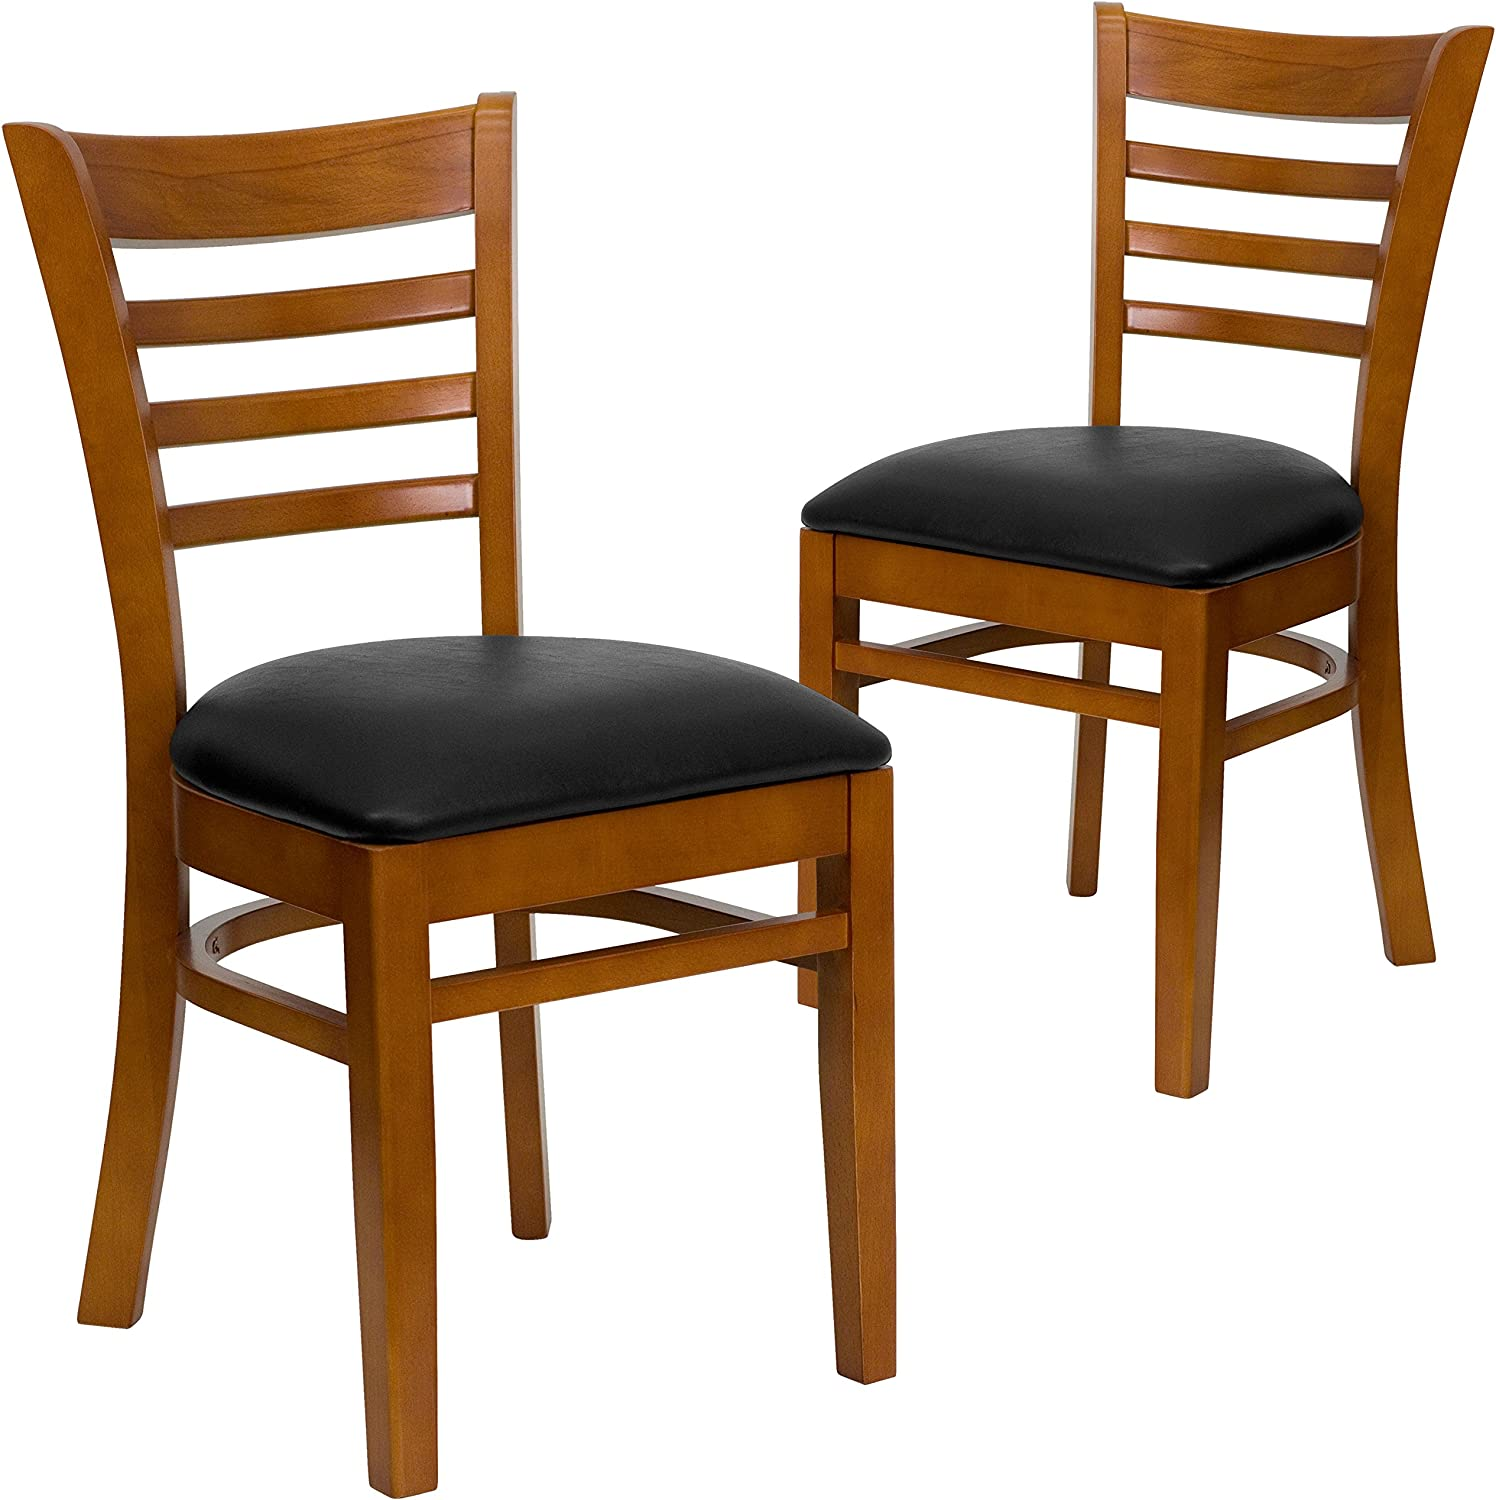 Flash Furniture 2 Pk. HERCULES Series Ladder Back Cherry Wood Restaurant Chair - Black Vinyl Seat